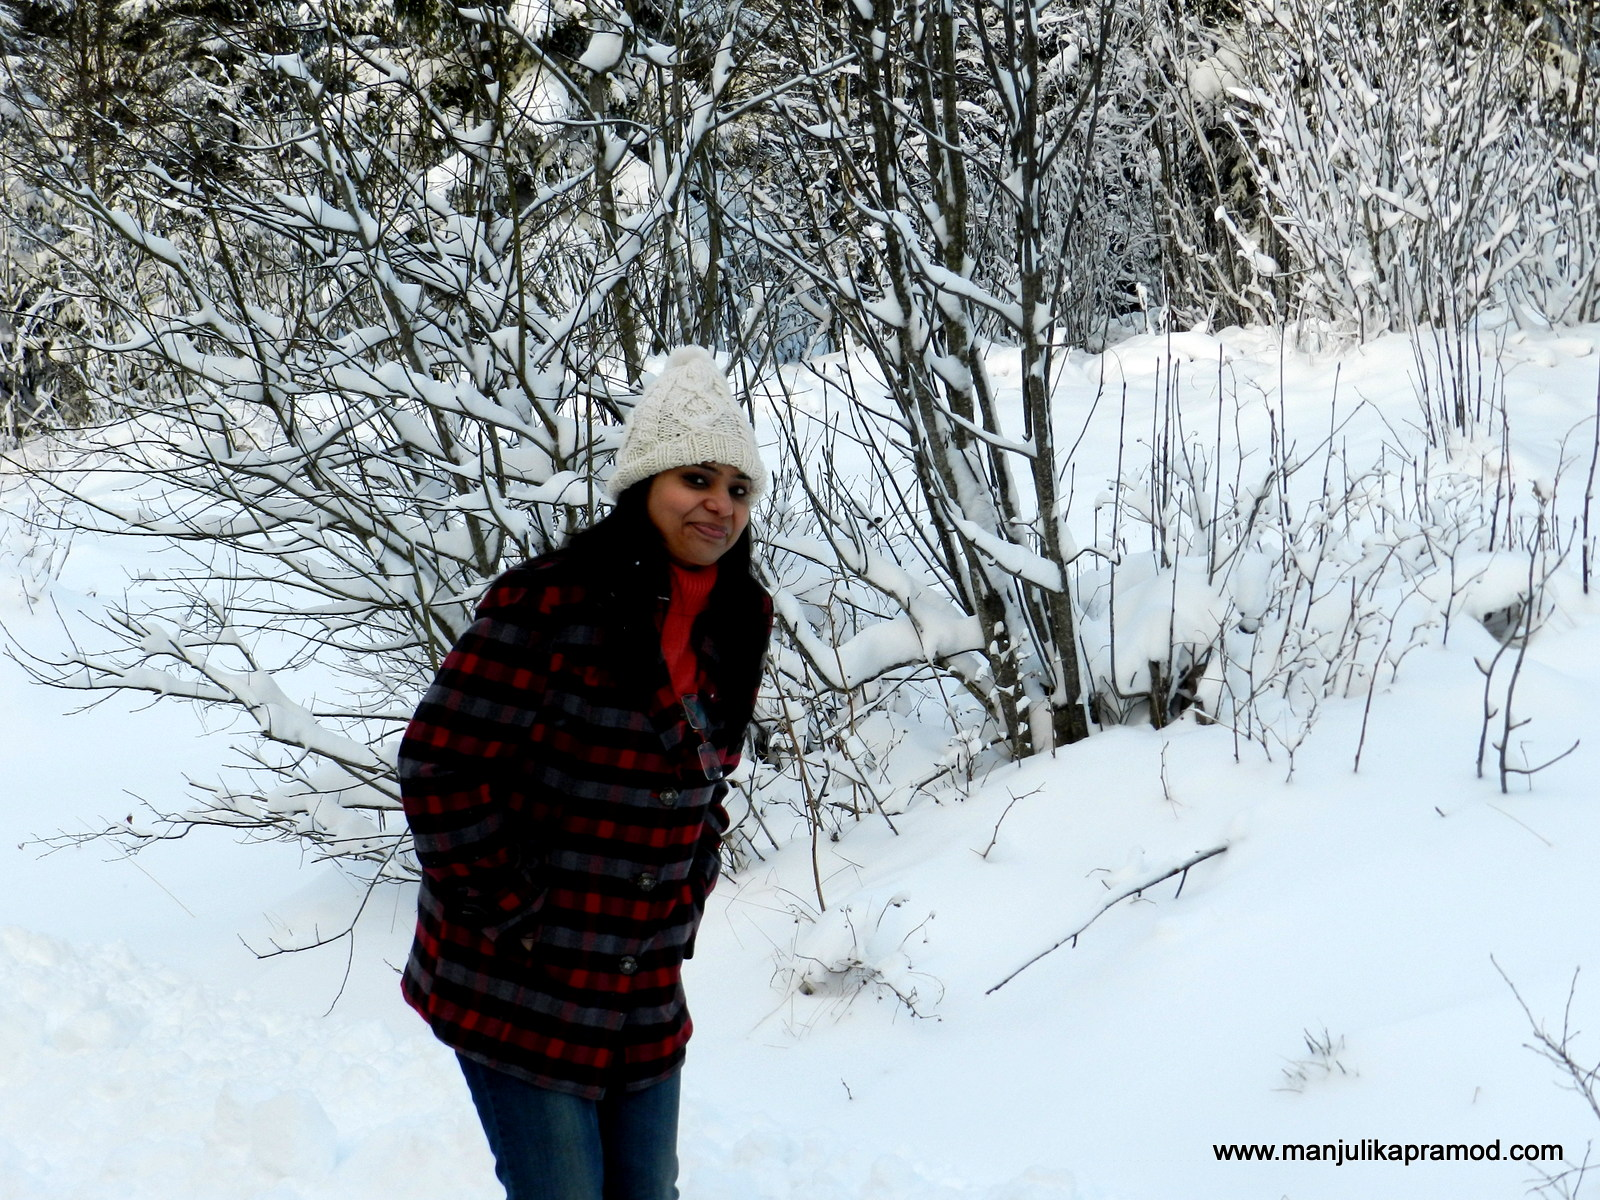 Having fun in Winters Snow in Oslo